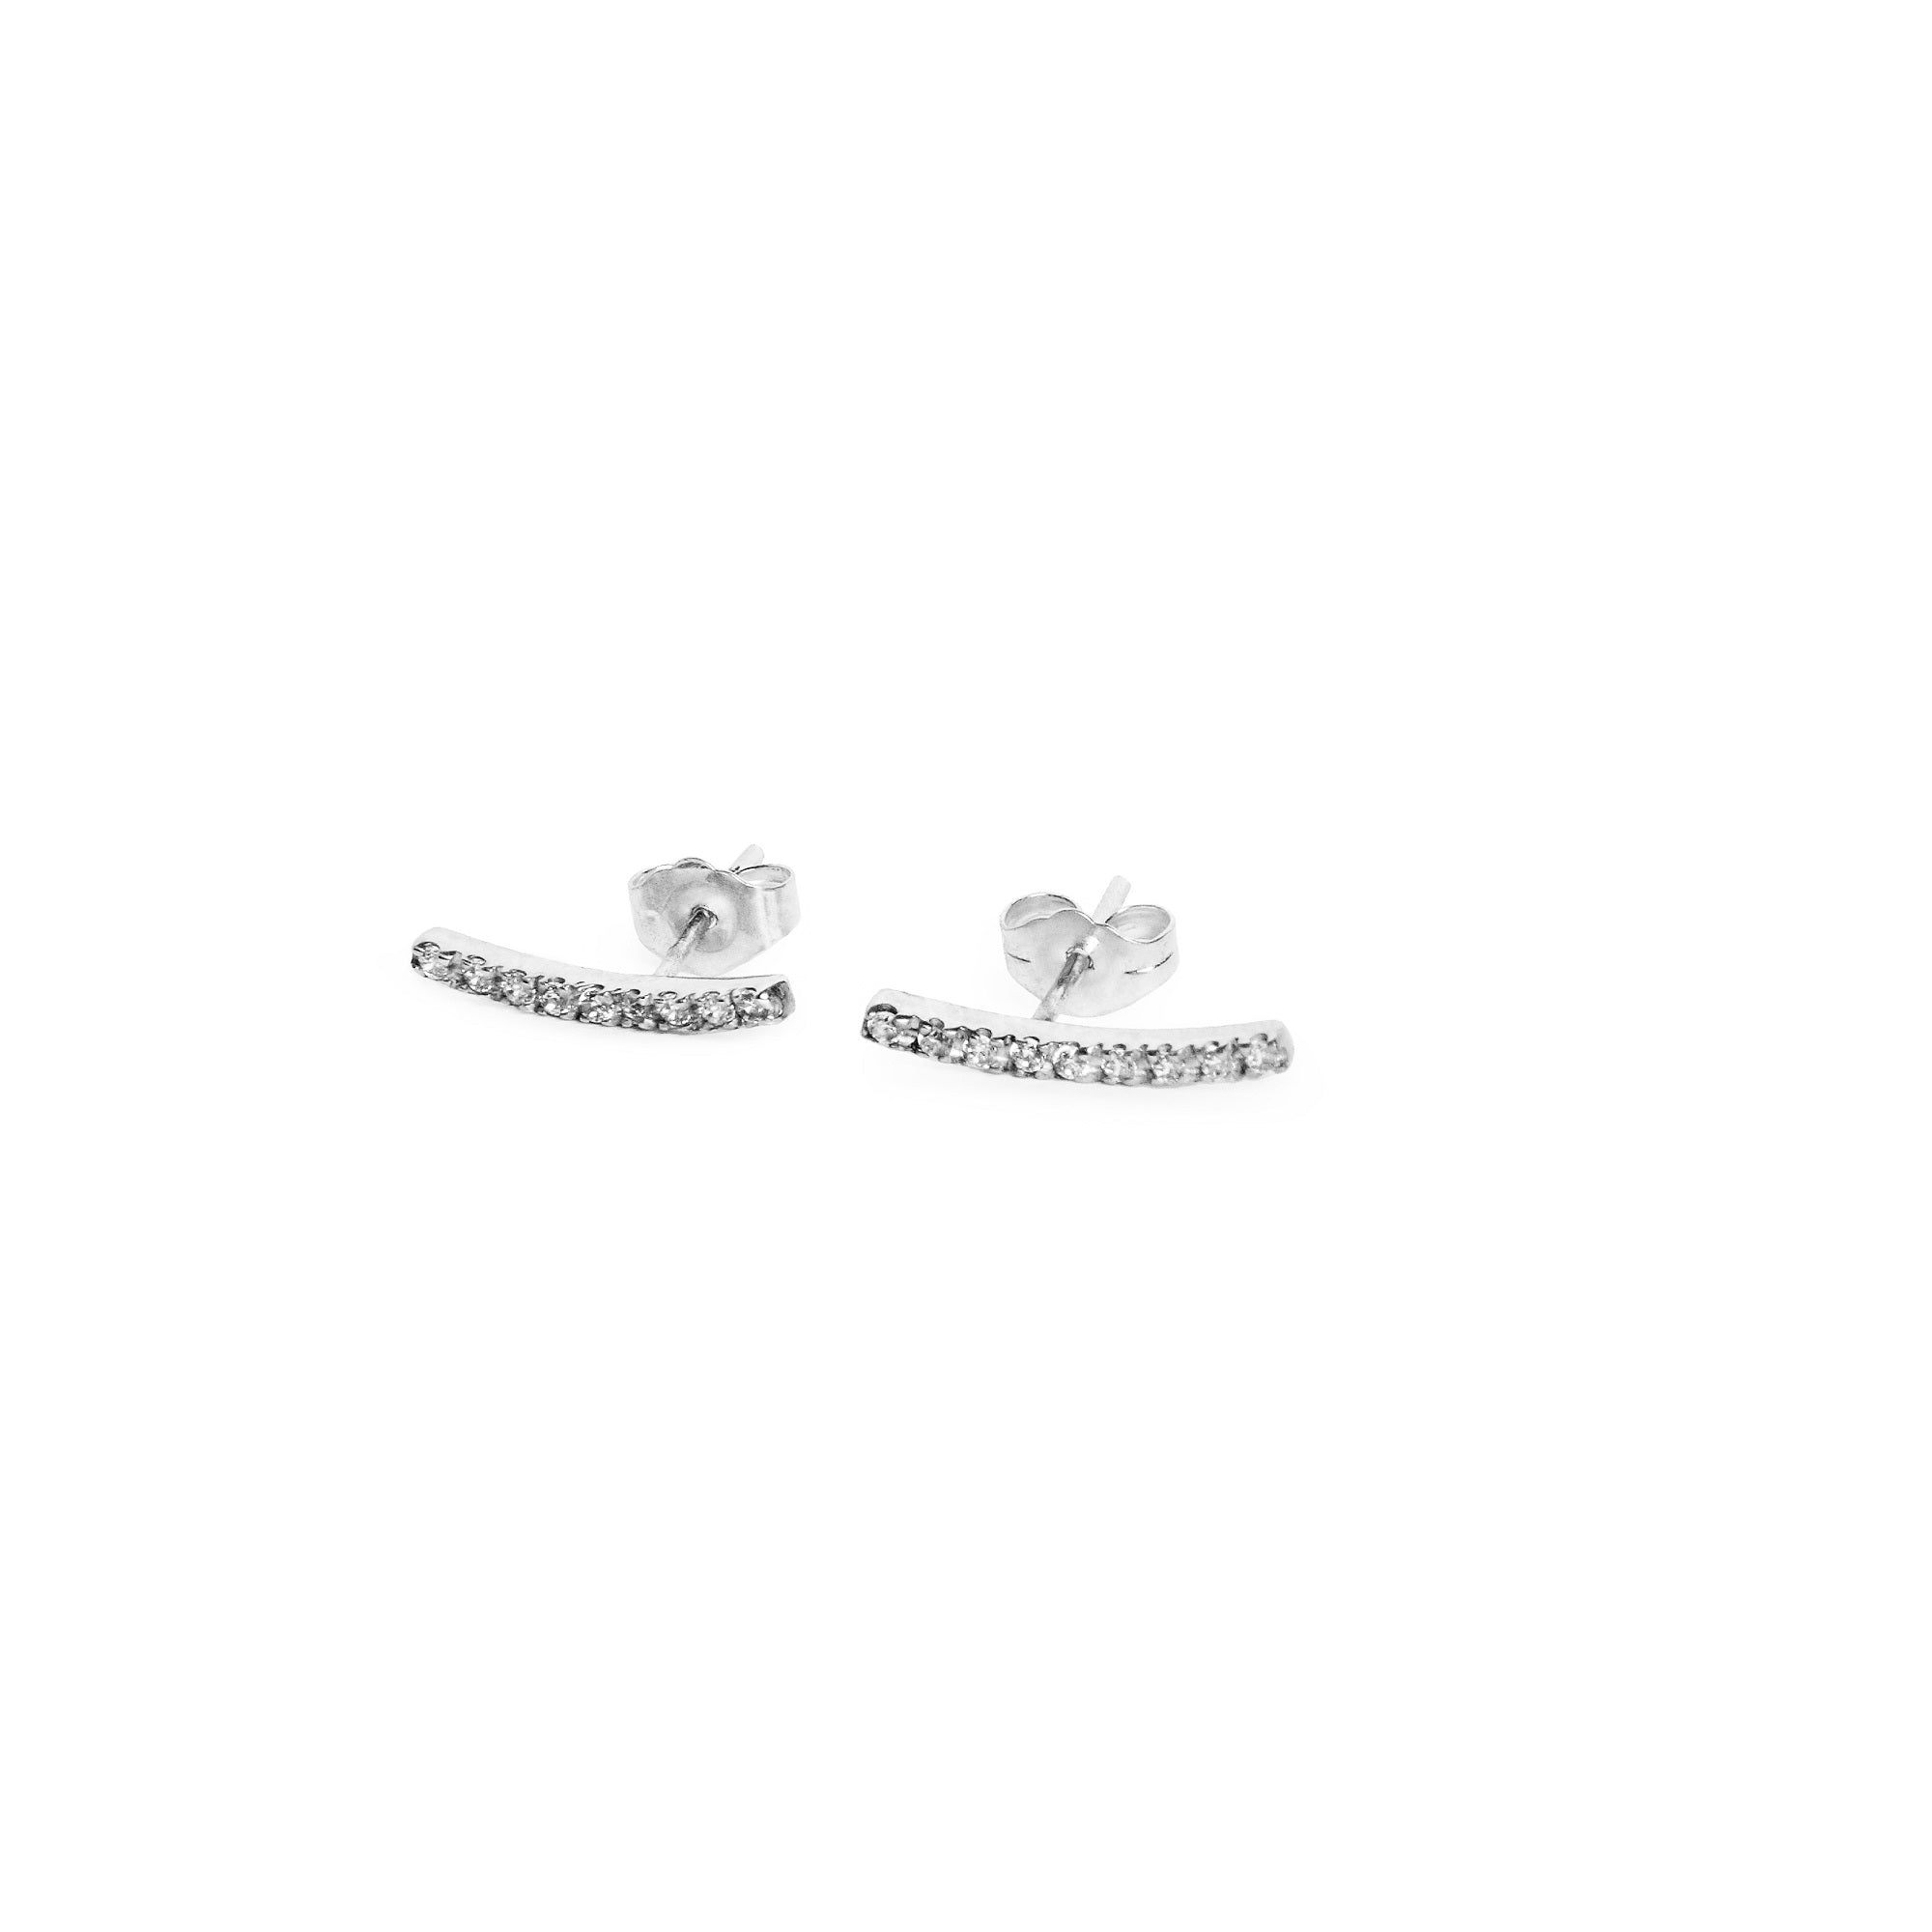 Gloria Earrings 14k White Gold and Diamonds